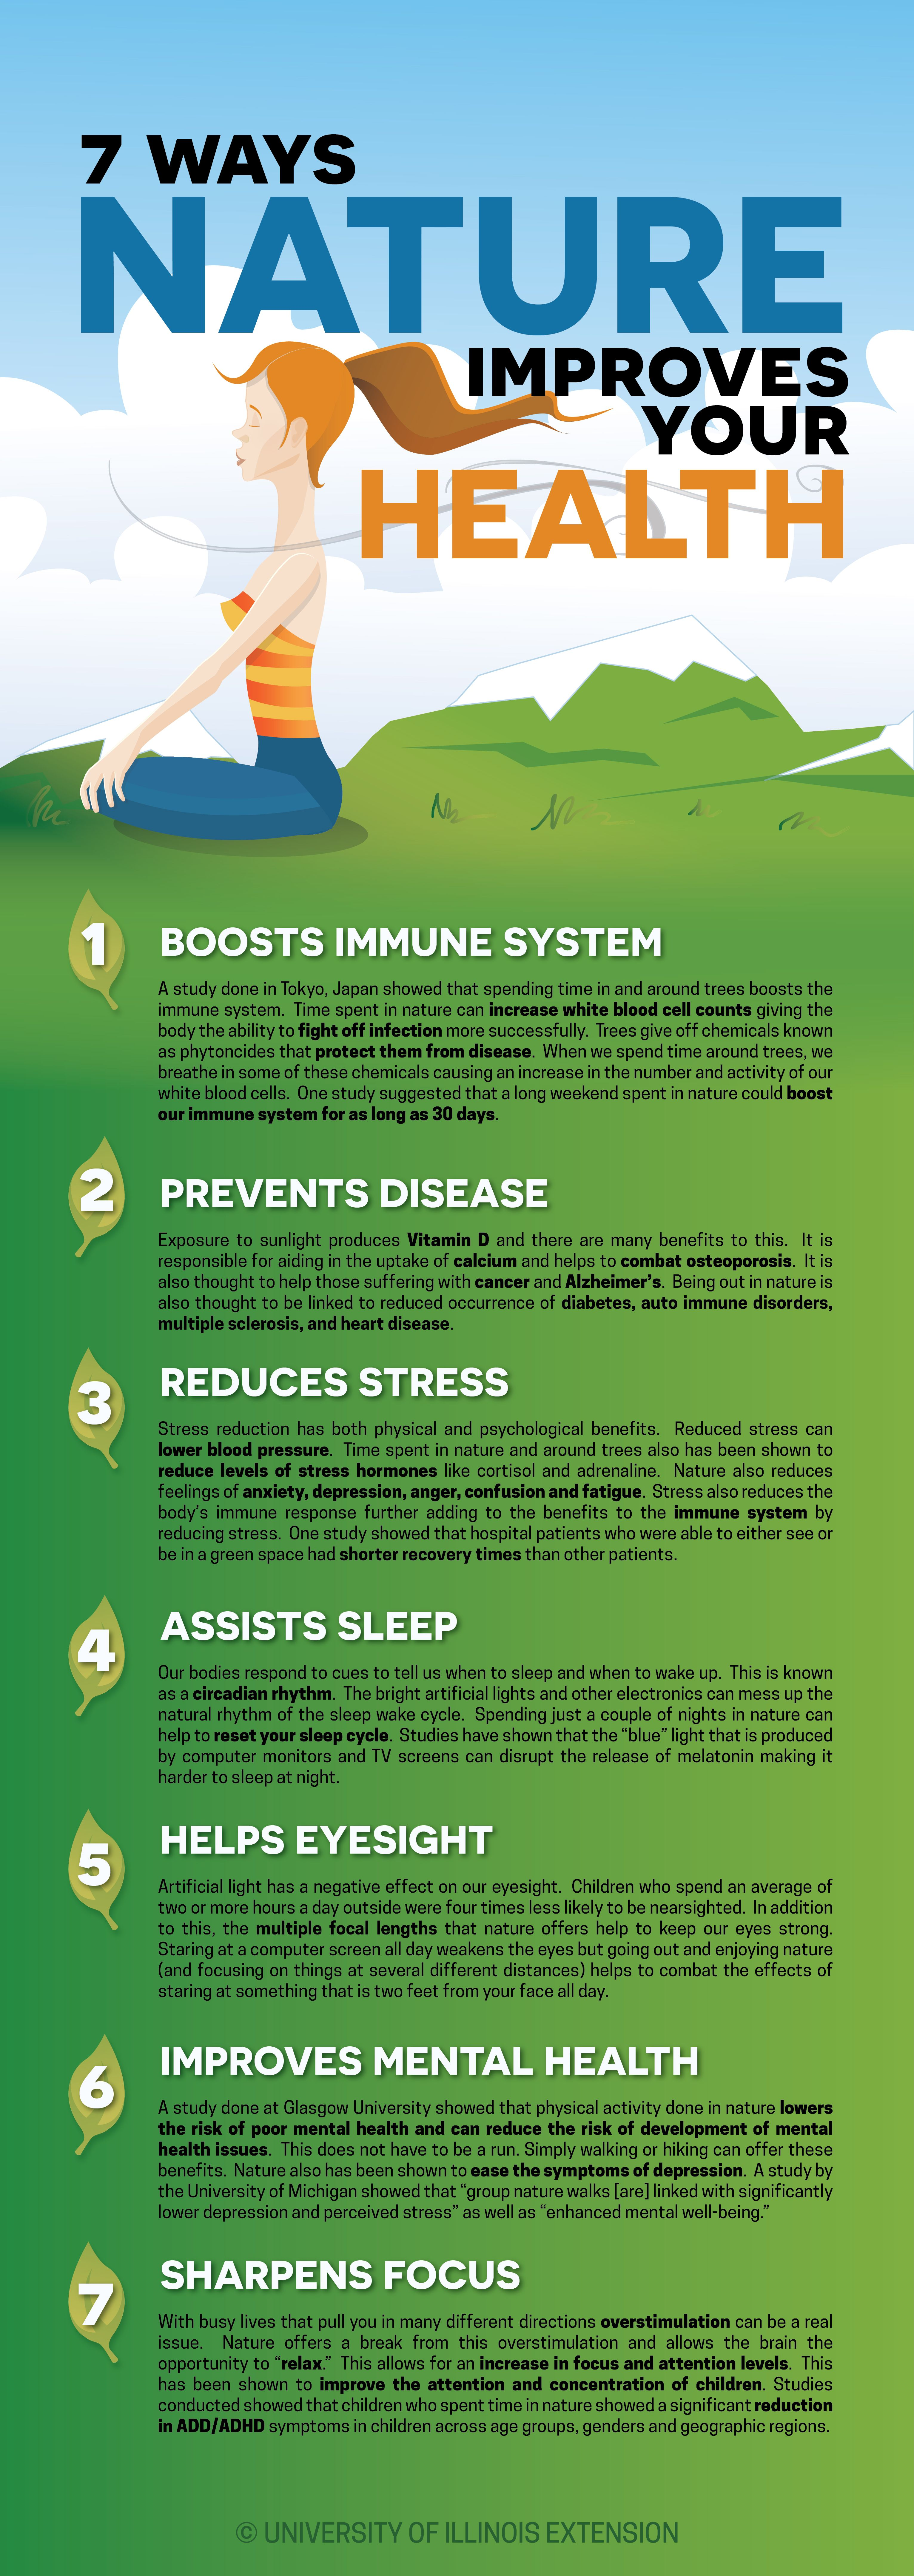 7 Ways Nature Improves Your Health!